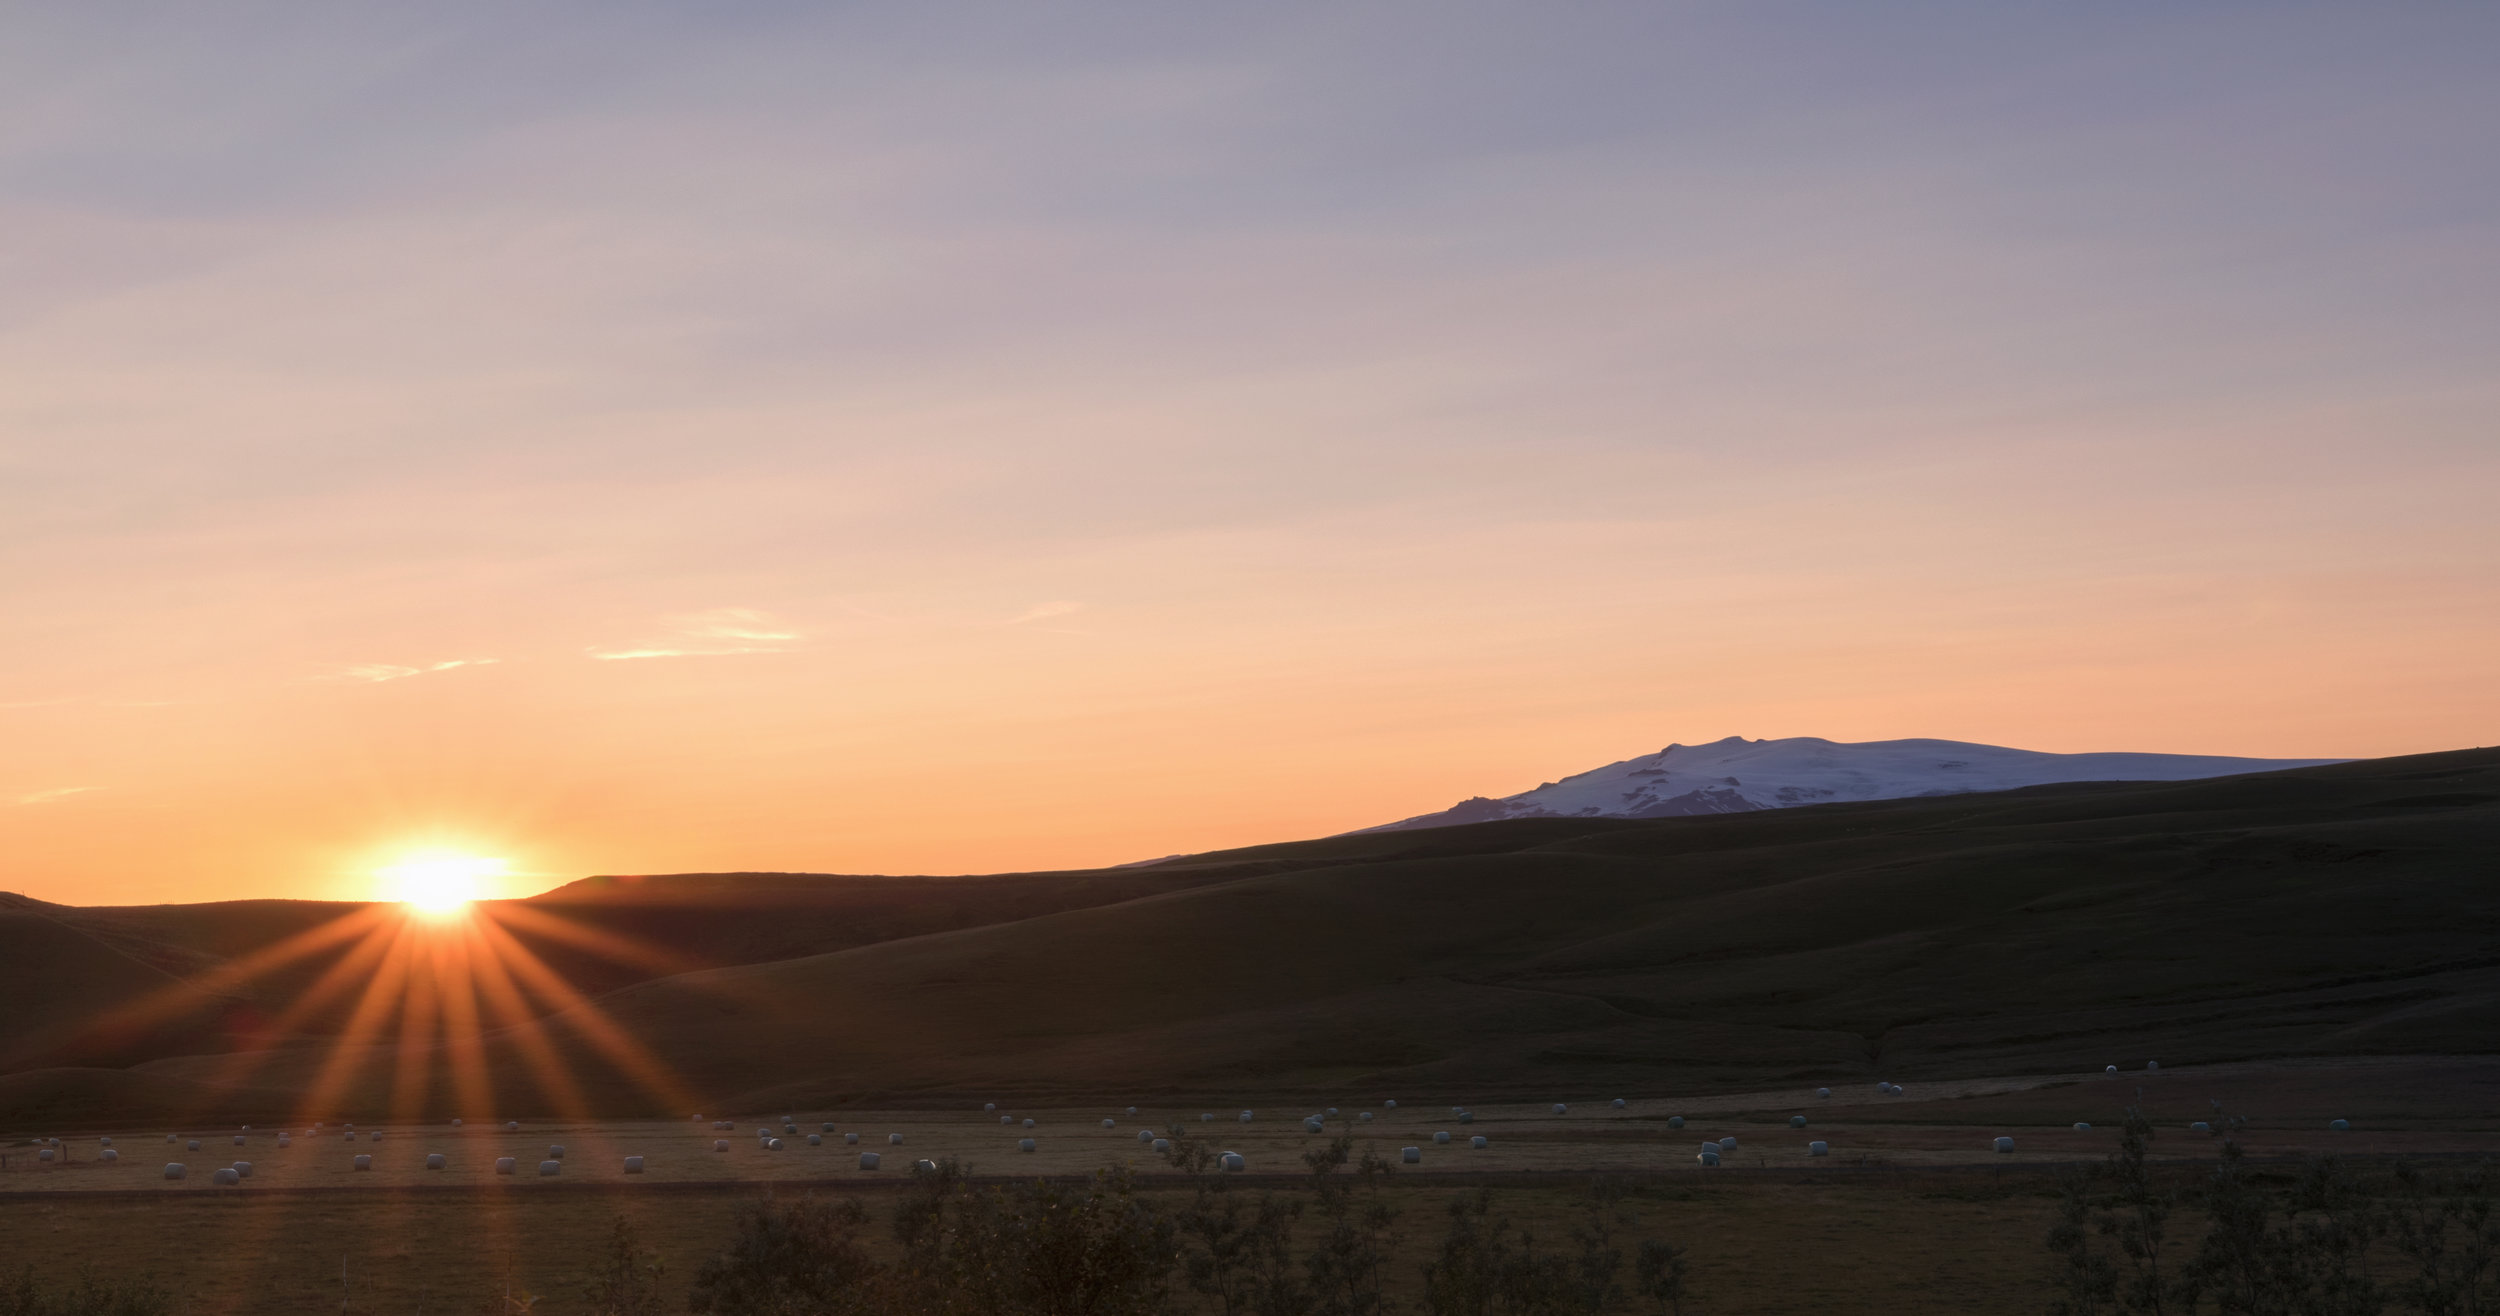 Taken just before 10pm in August from our family's summer house you can just see the famous Eyjafjallajökull volcano. I used the Photographer's Ephemeris to plan for the sun hitting that spot so I could capture it.